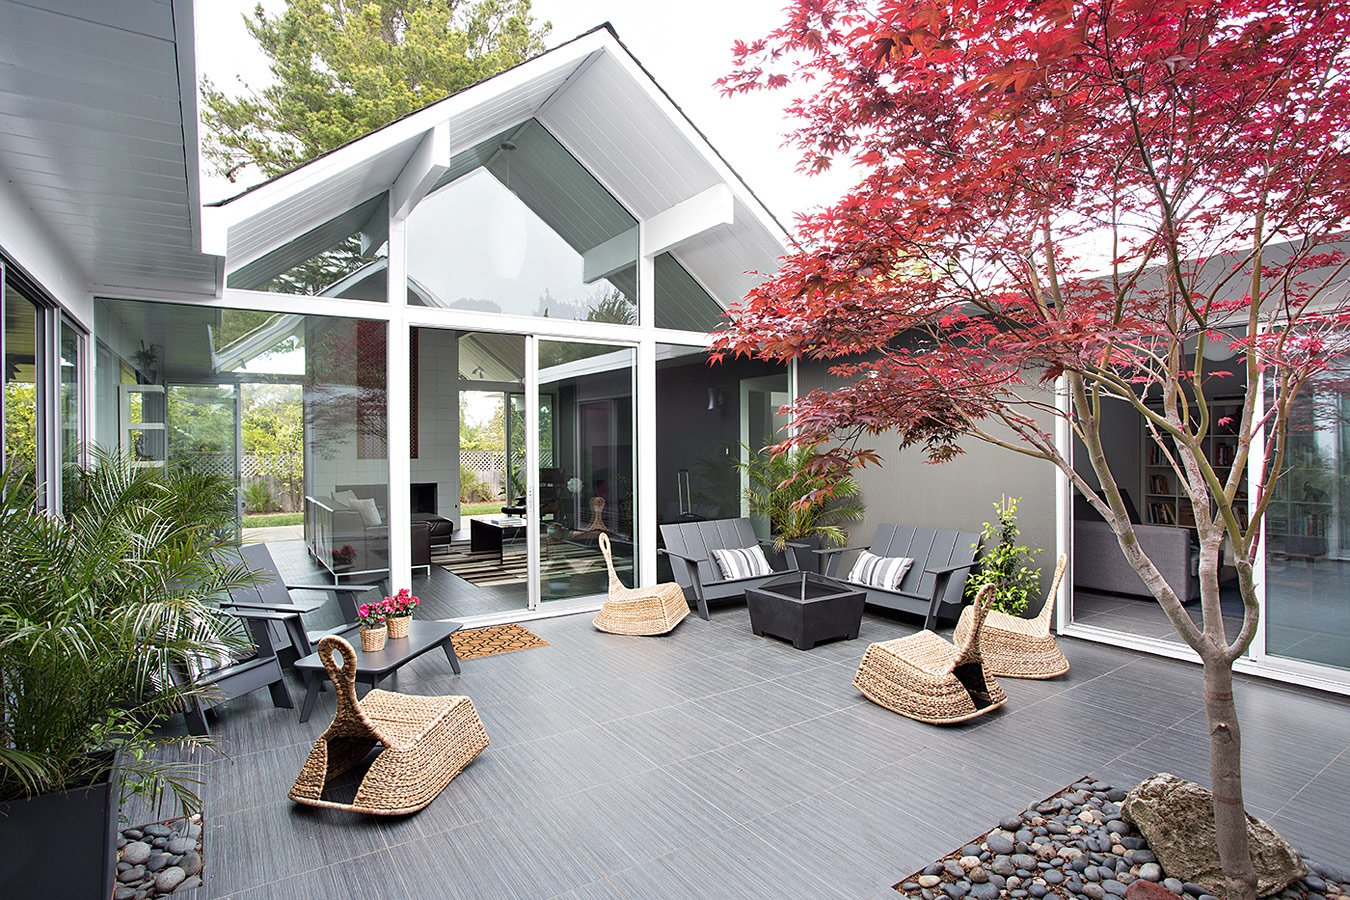 Klopf - Double Gable Eichler Remodel - Burlingame - patio